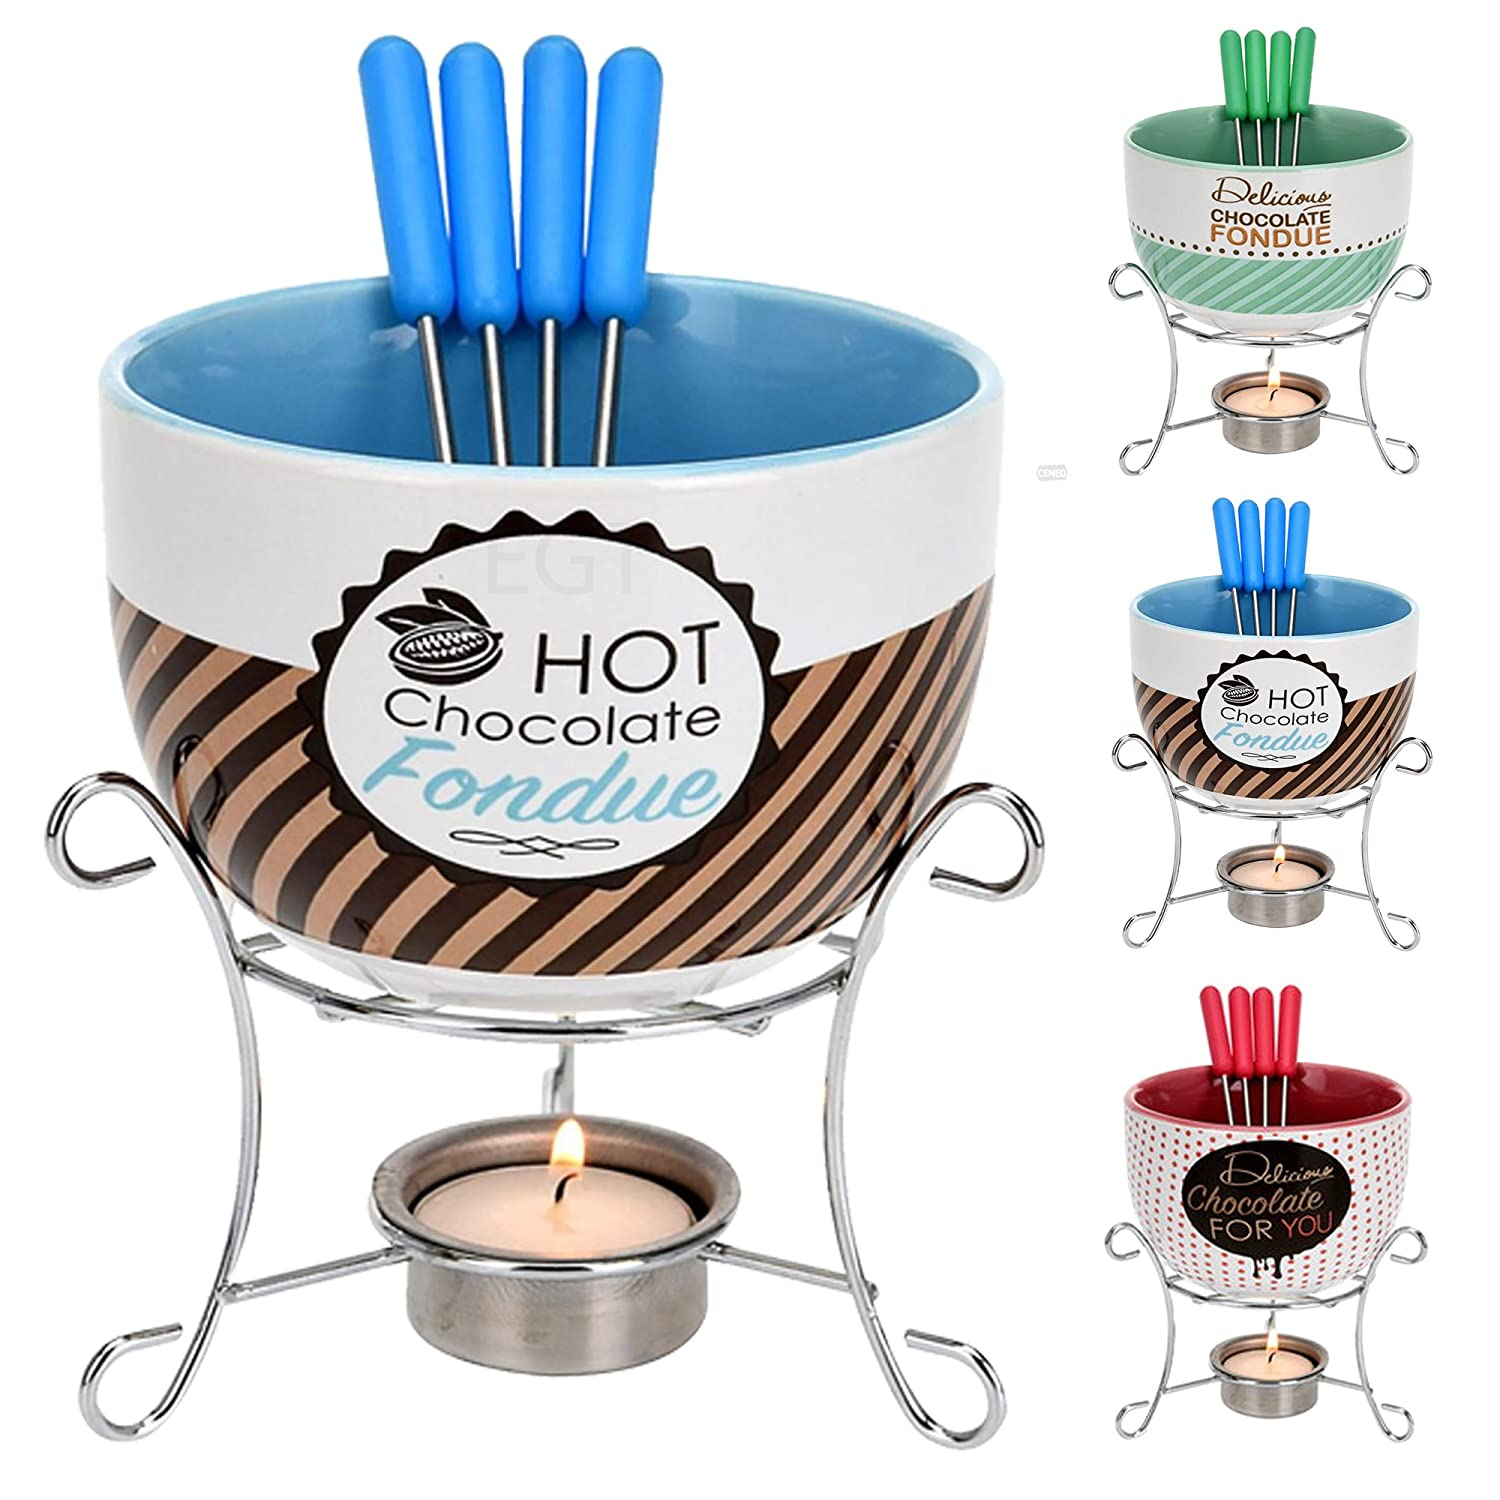 Ceramic Chocolate or Cheese Fondue Set - with 4 Stainless Steel Skewers (Blue) EG Homeware